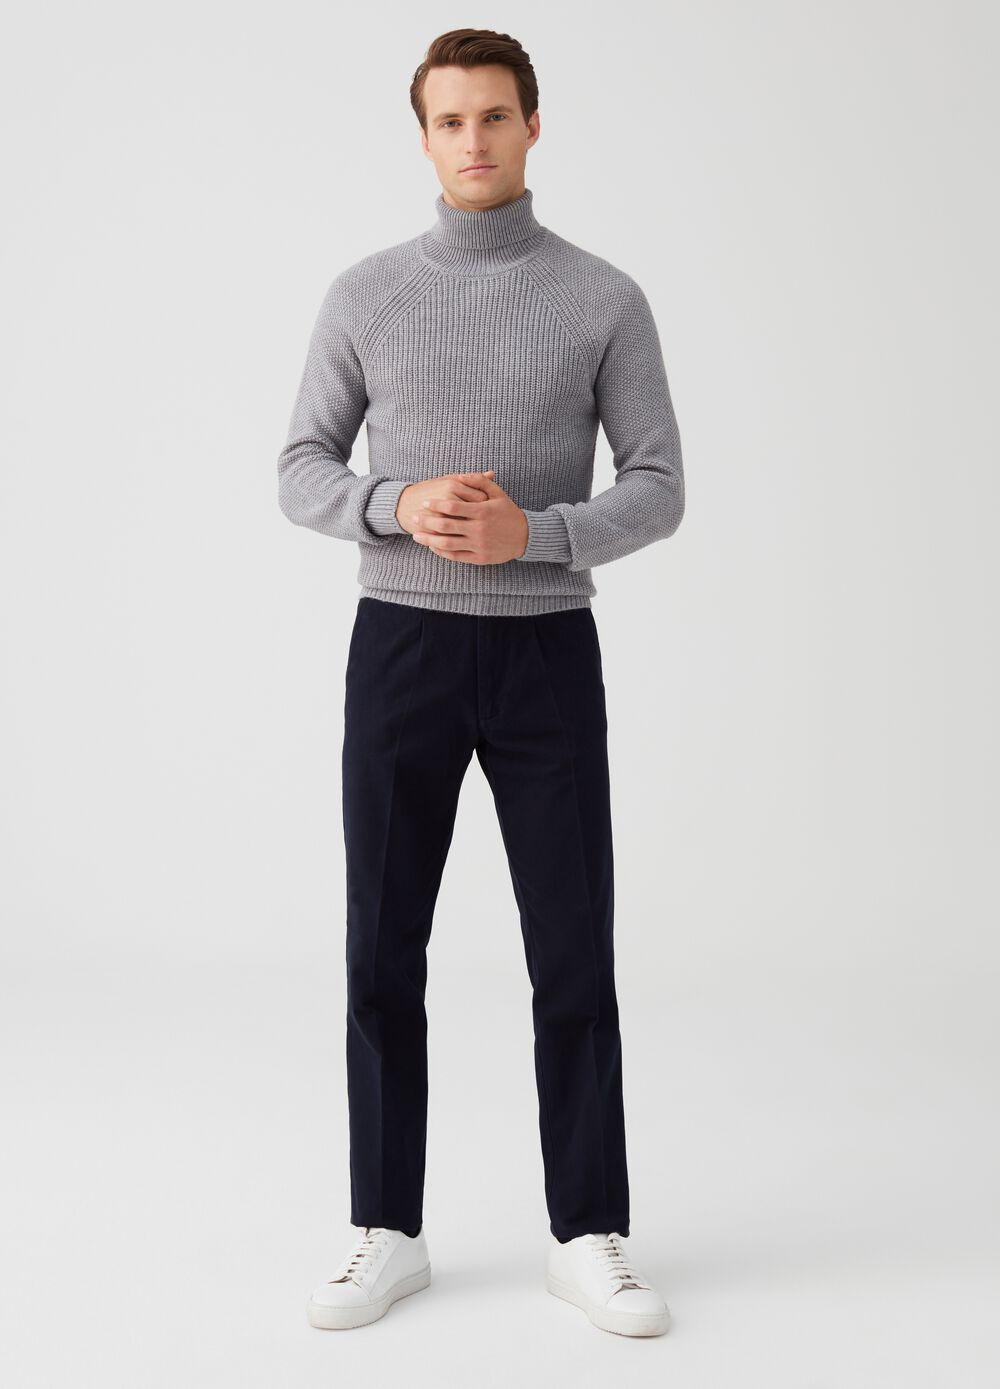 Turtleneck jumper with striped weave and high neck